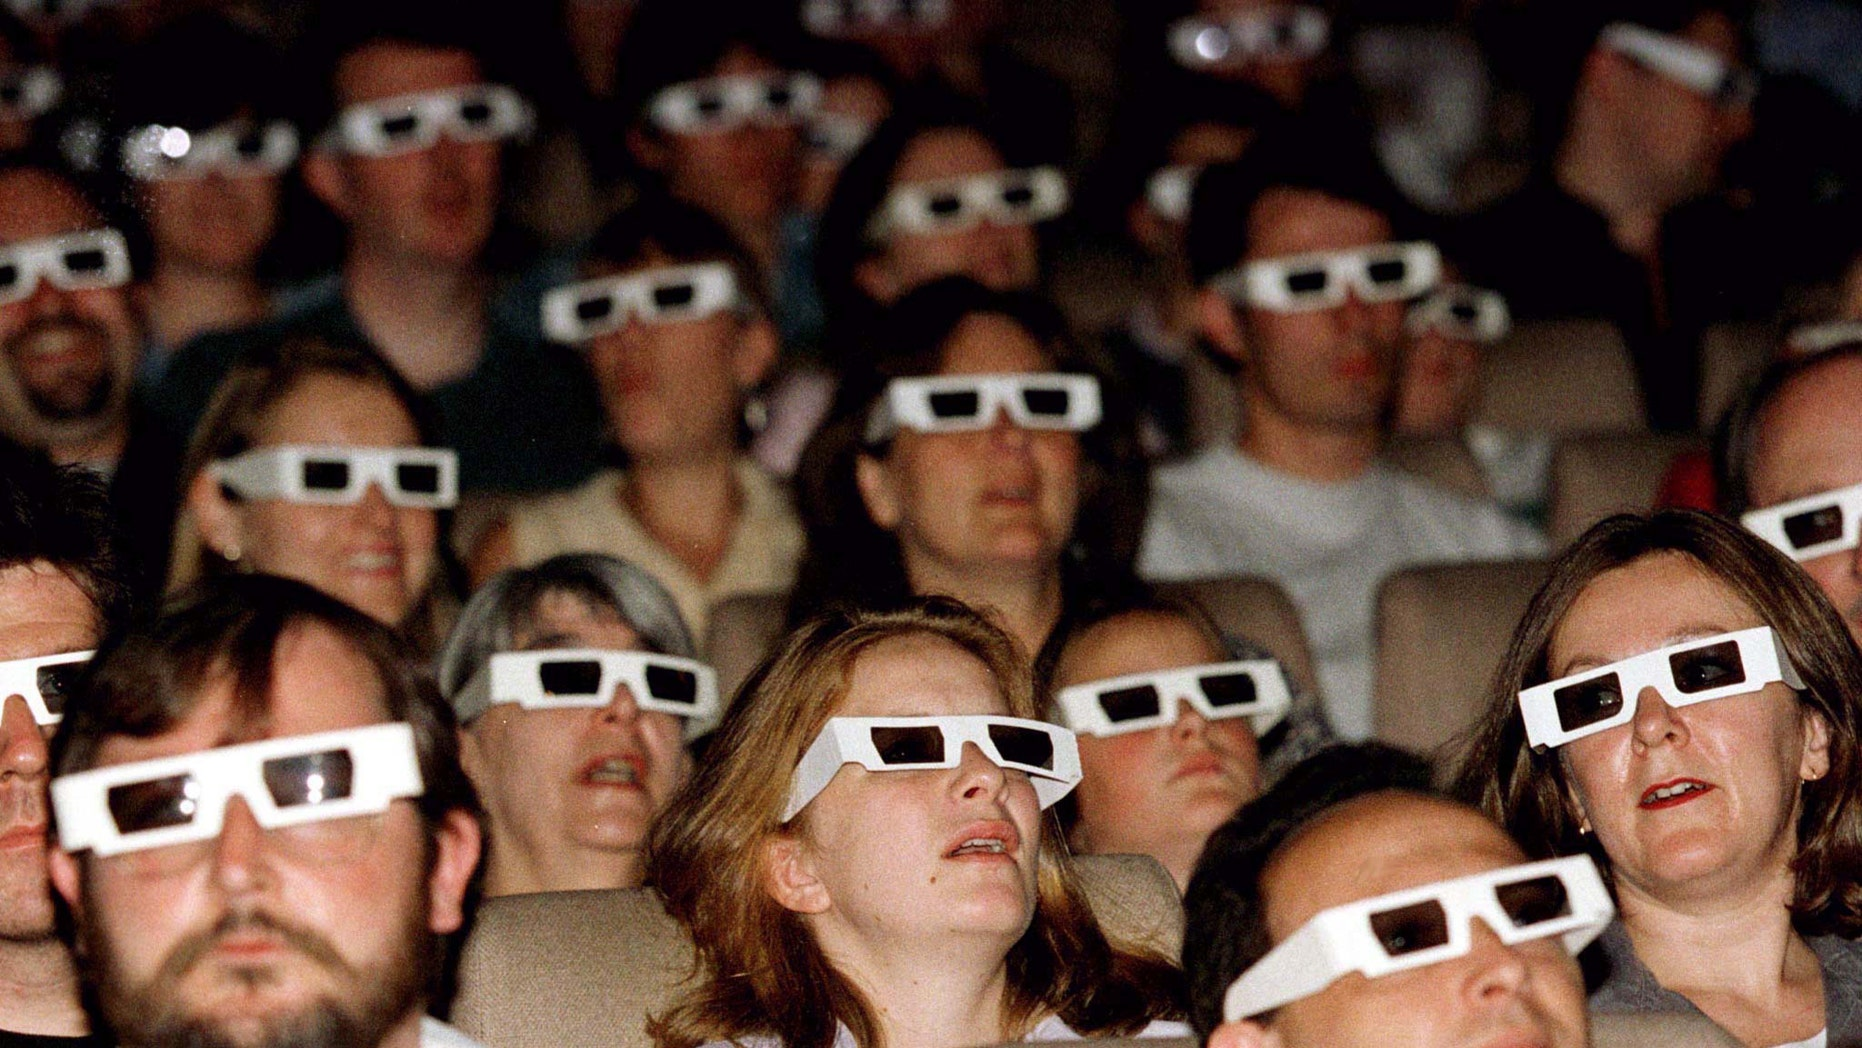 File photo - An audience watches a film through 3D spectacles at the launch screening of The National Film Theatre 3D film season, August 8, 1996. (Reuters)